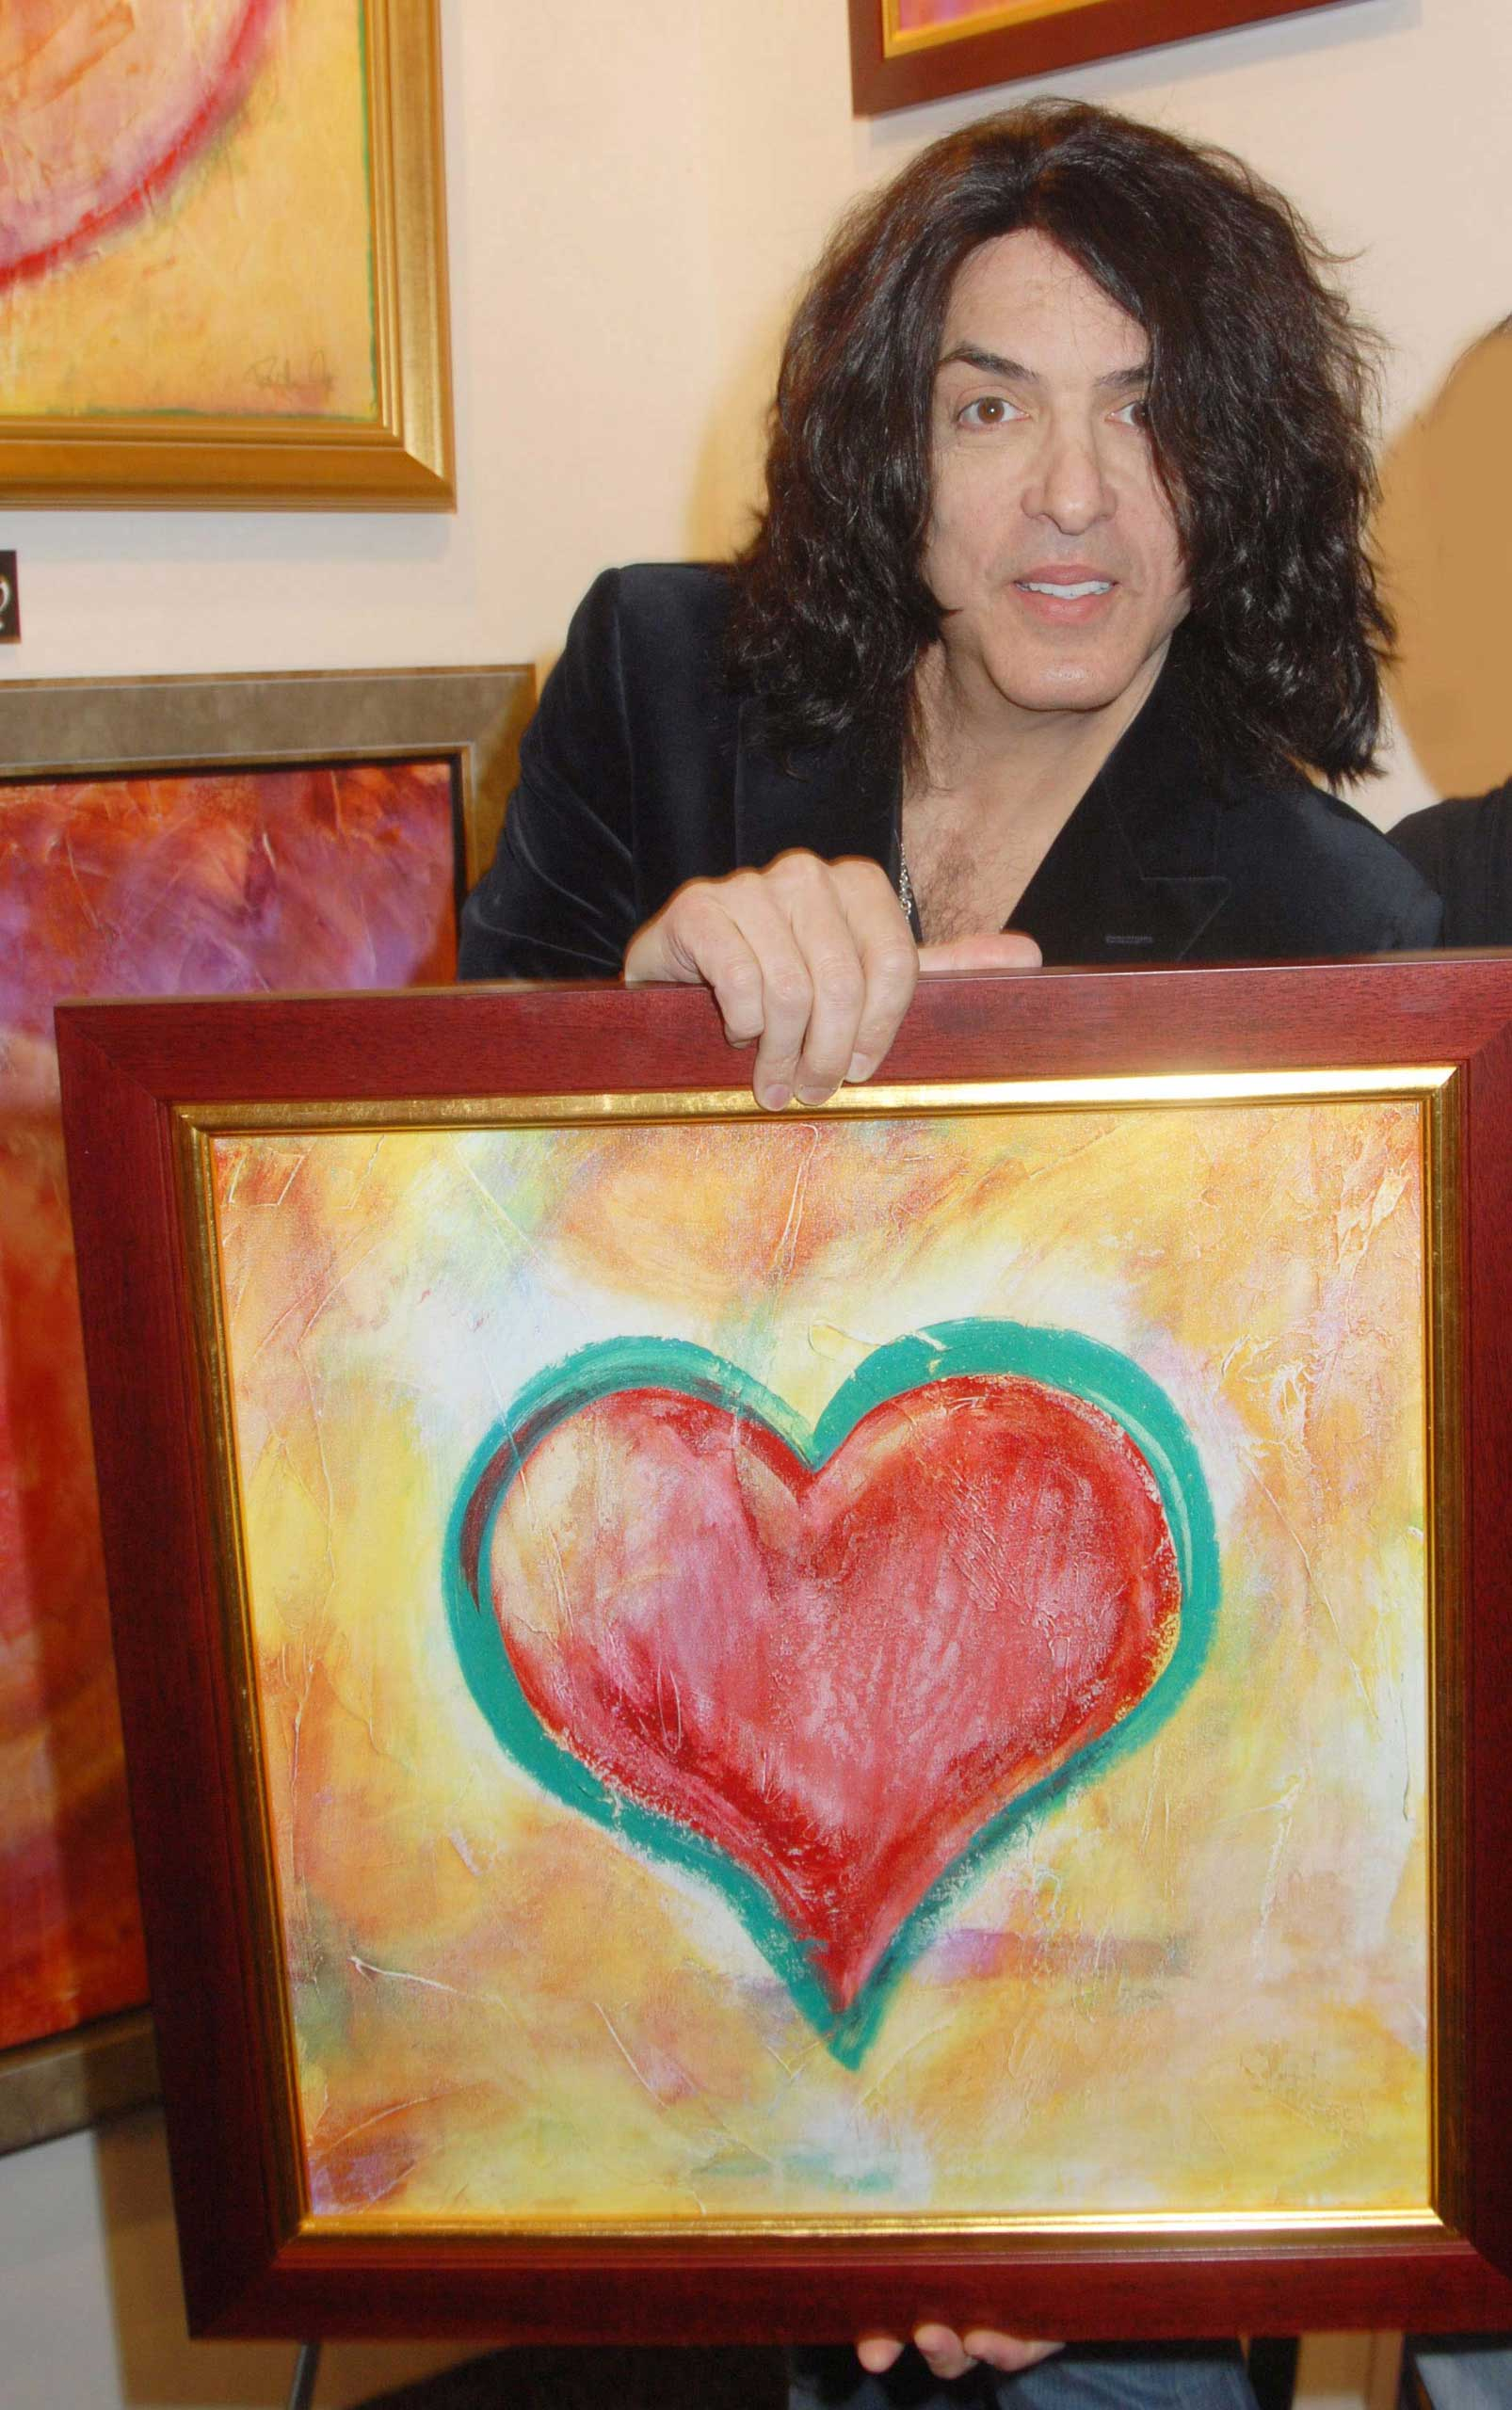 This one was by Paul Stanley of Kiss.